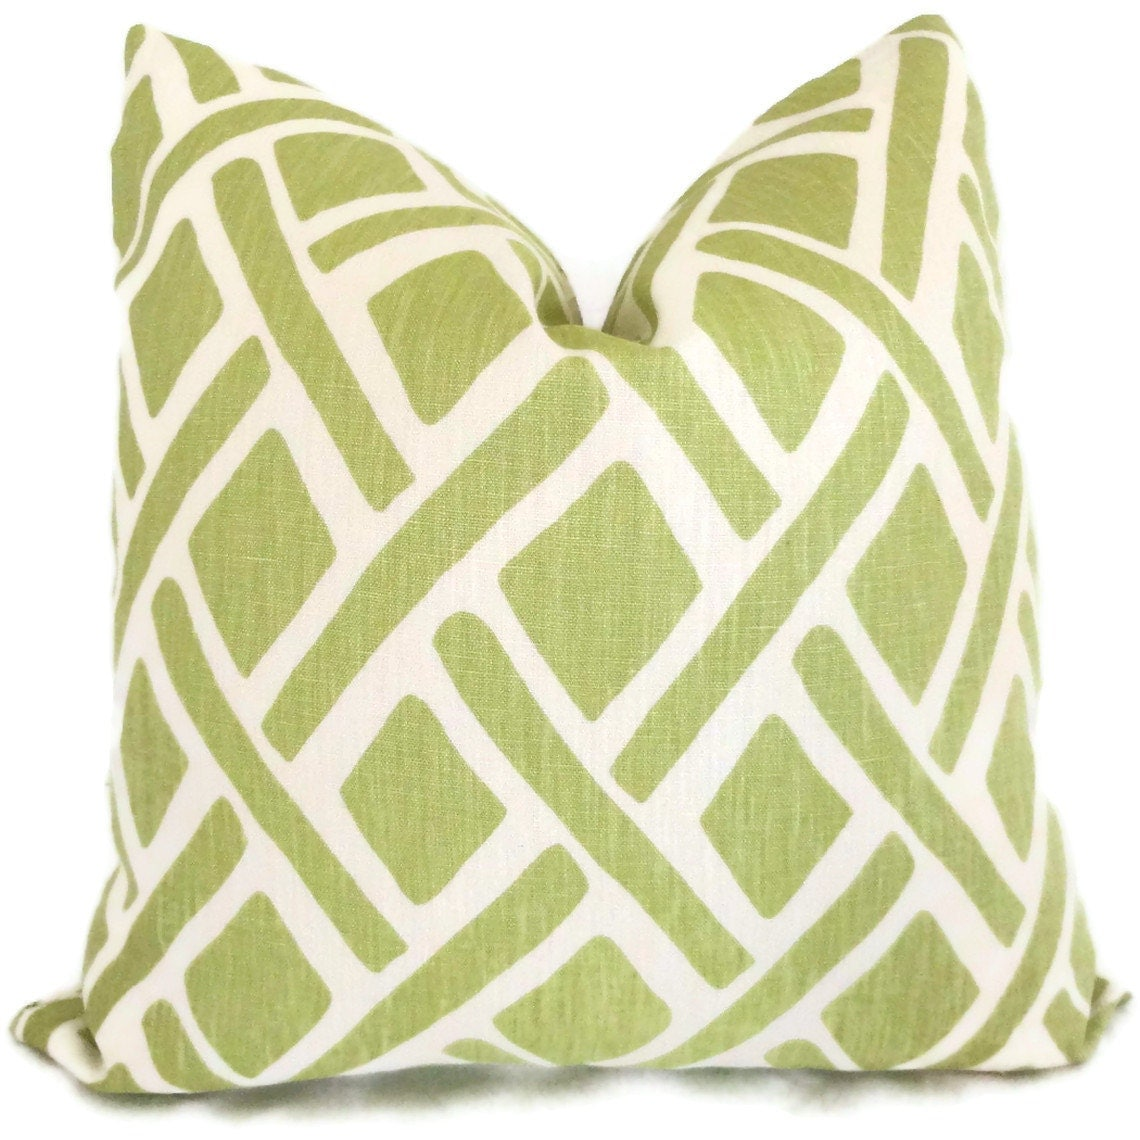 Decorative Pillows For Bed Green : Kravet Green Trellis Decorative Pillow Cover 18x18 20x20